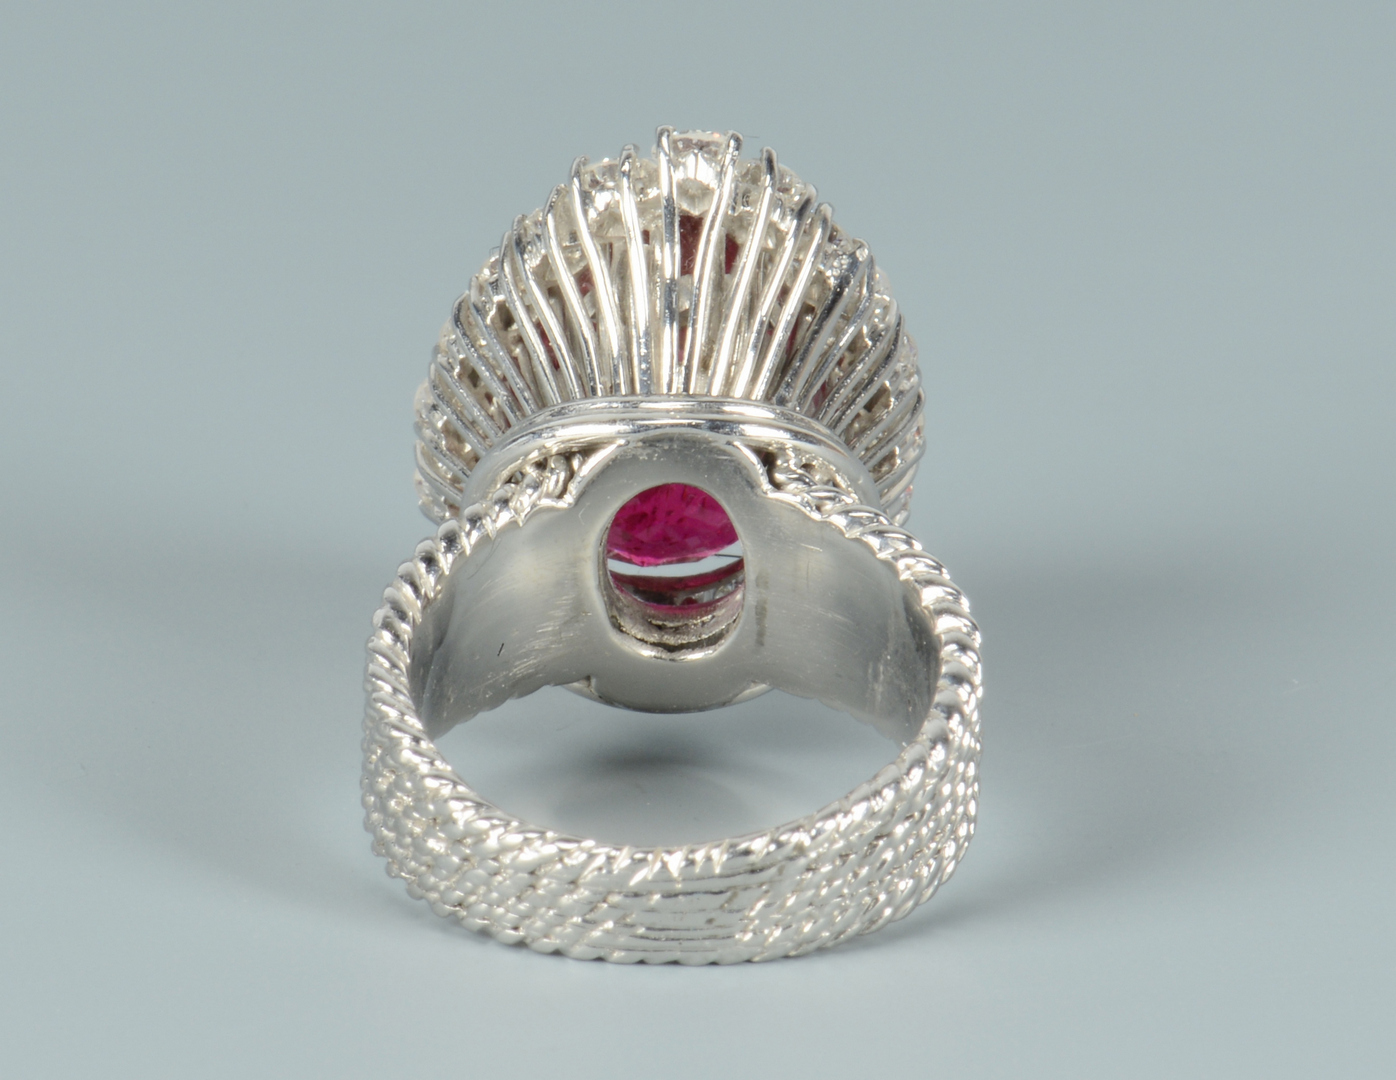 Lot 3088059: 14k Rubellite and Diamond Ring